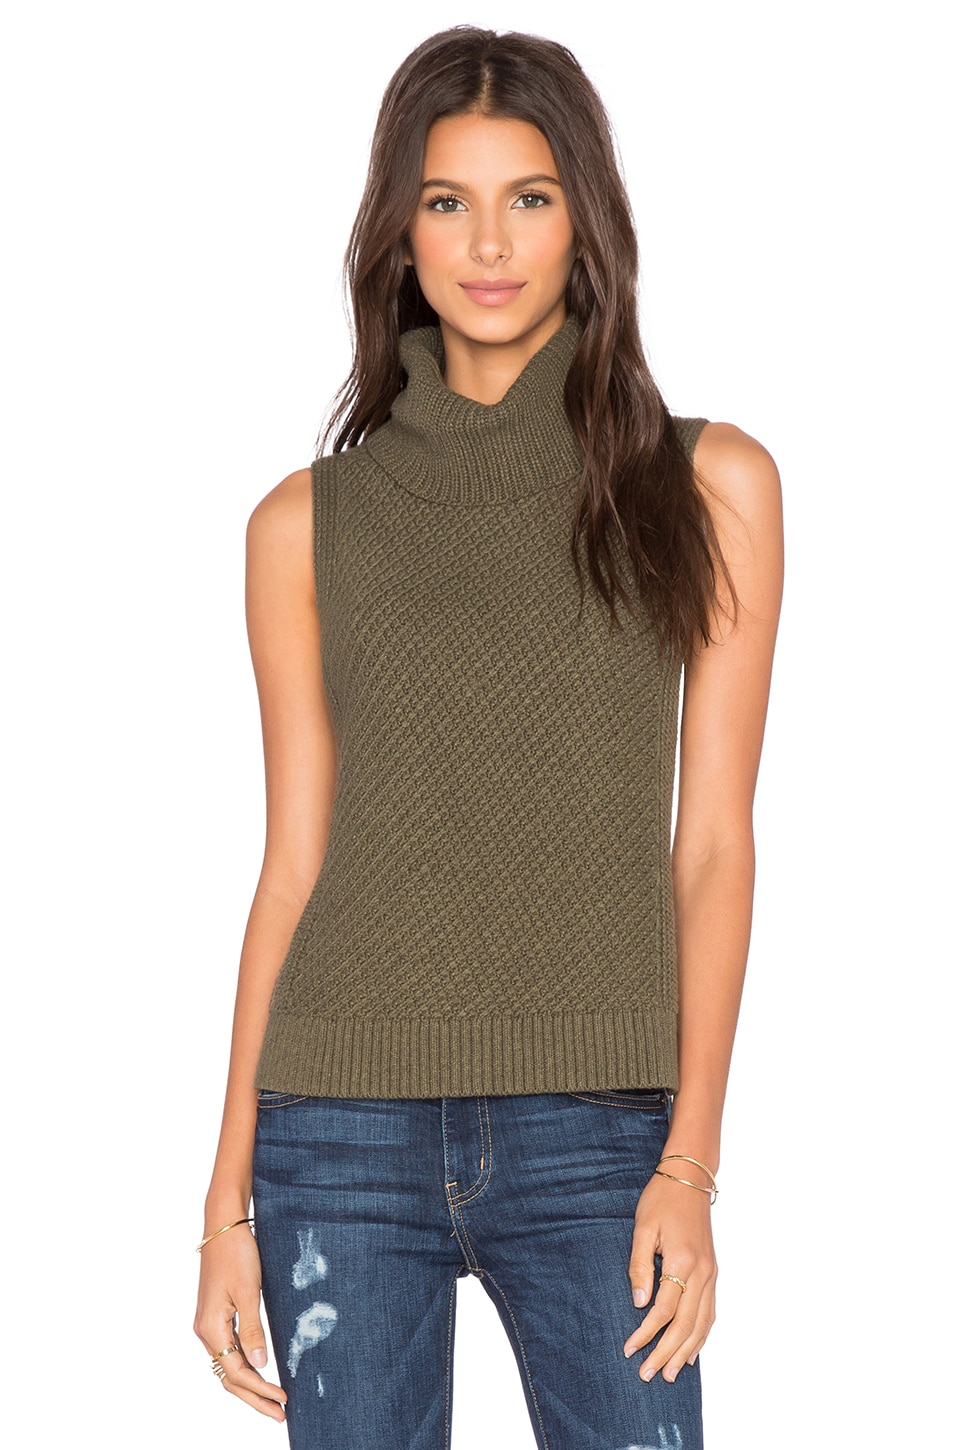 LEO & SAGE Sleeveless Turtleneck Sweater in Fern